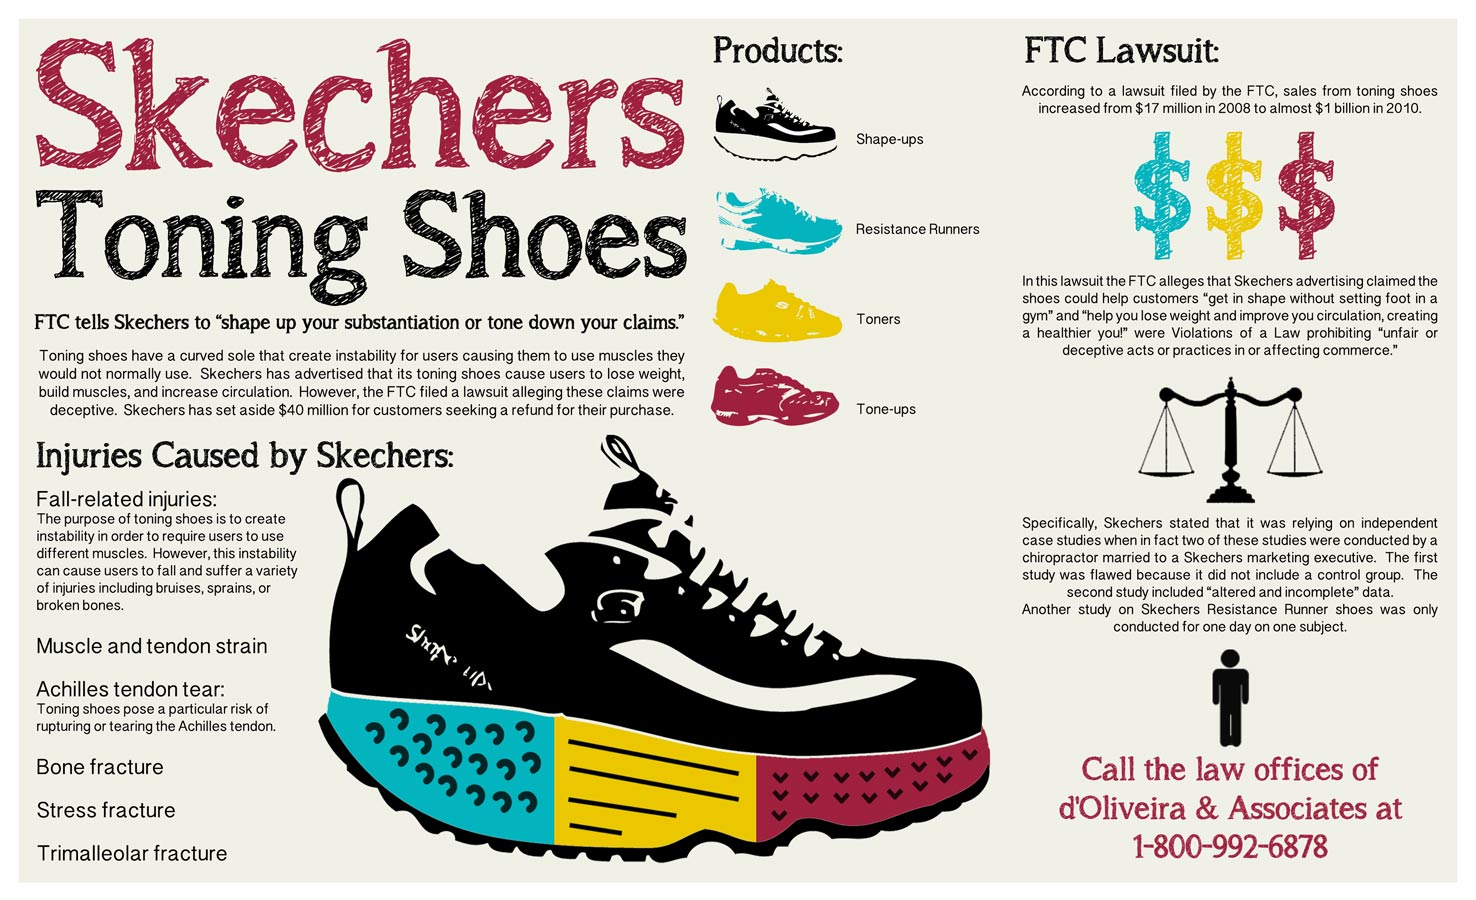 d u0026 39 oliveira  u0026 associates releases skechers toning shoes infographic after the federal trade